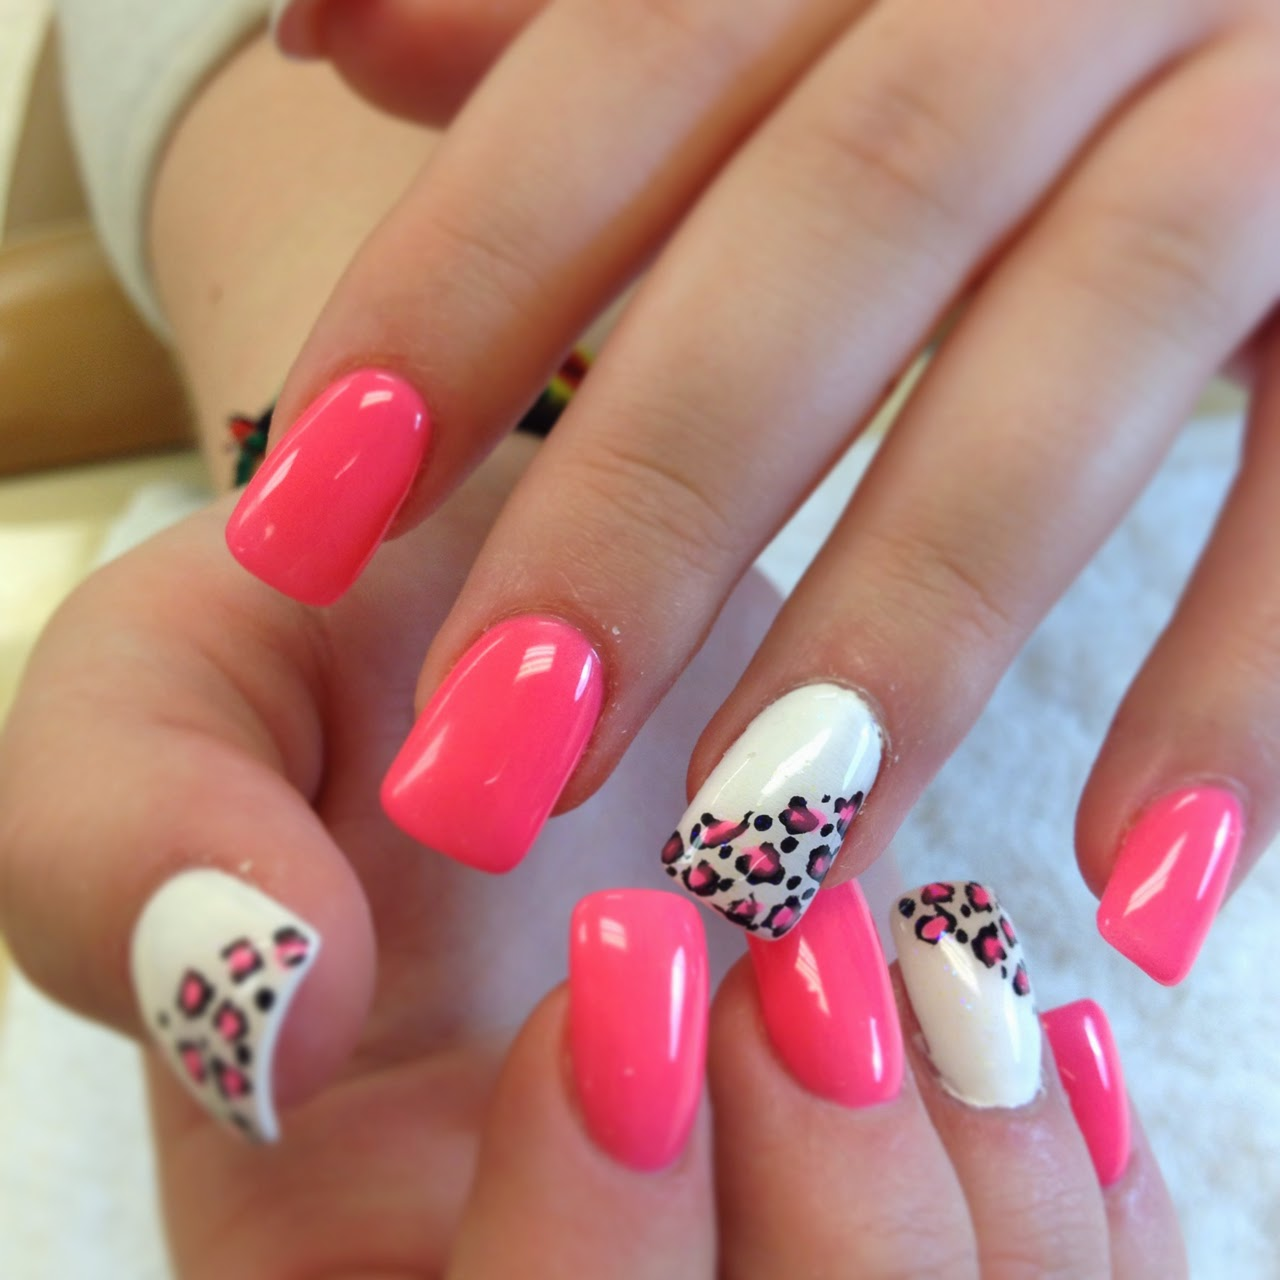 Simple Nail Art Designs Gallery: Nail Salon Designs: Nail Designs Simple & Easy Salon Spa